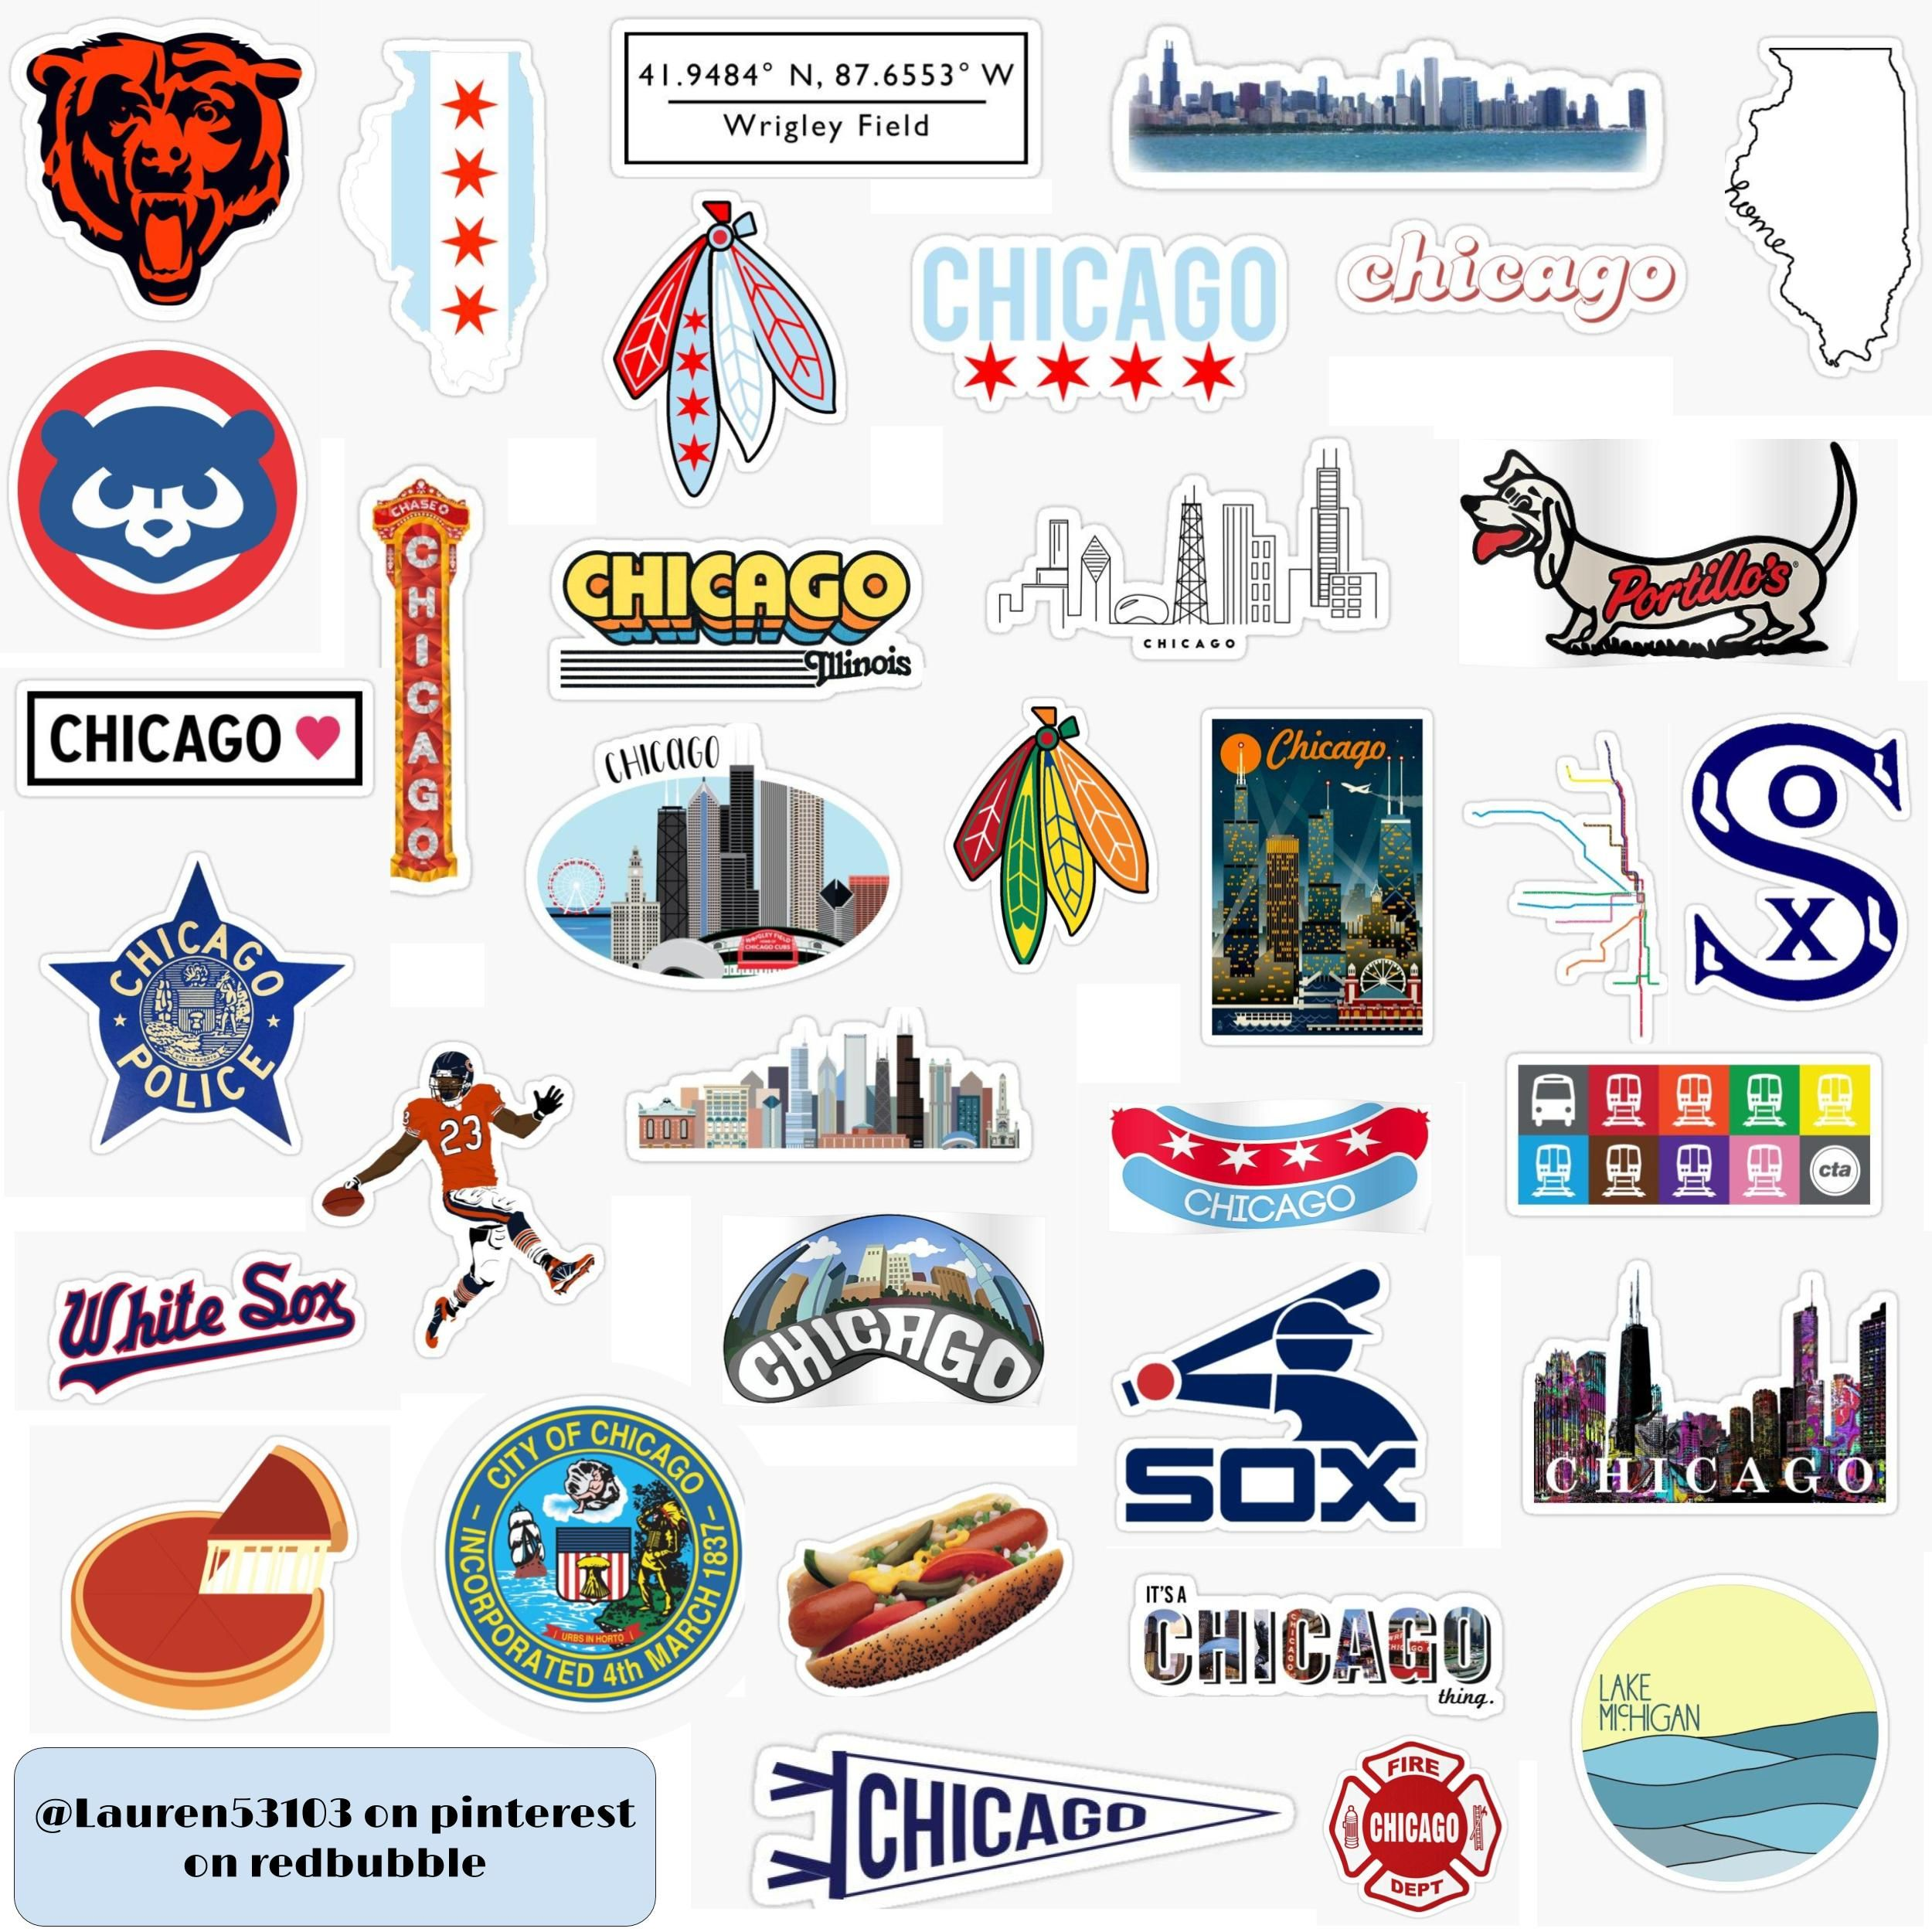 Chicago Stickers Birthday Cards Phone Case Stickers Hydroflask Stickers [ 2500 x 2500 Pixel ]